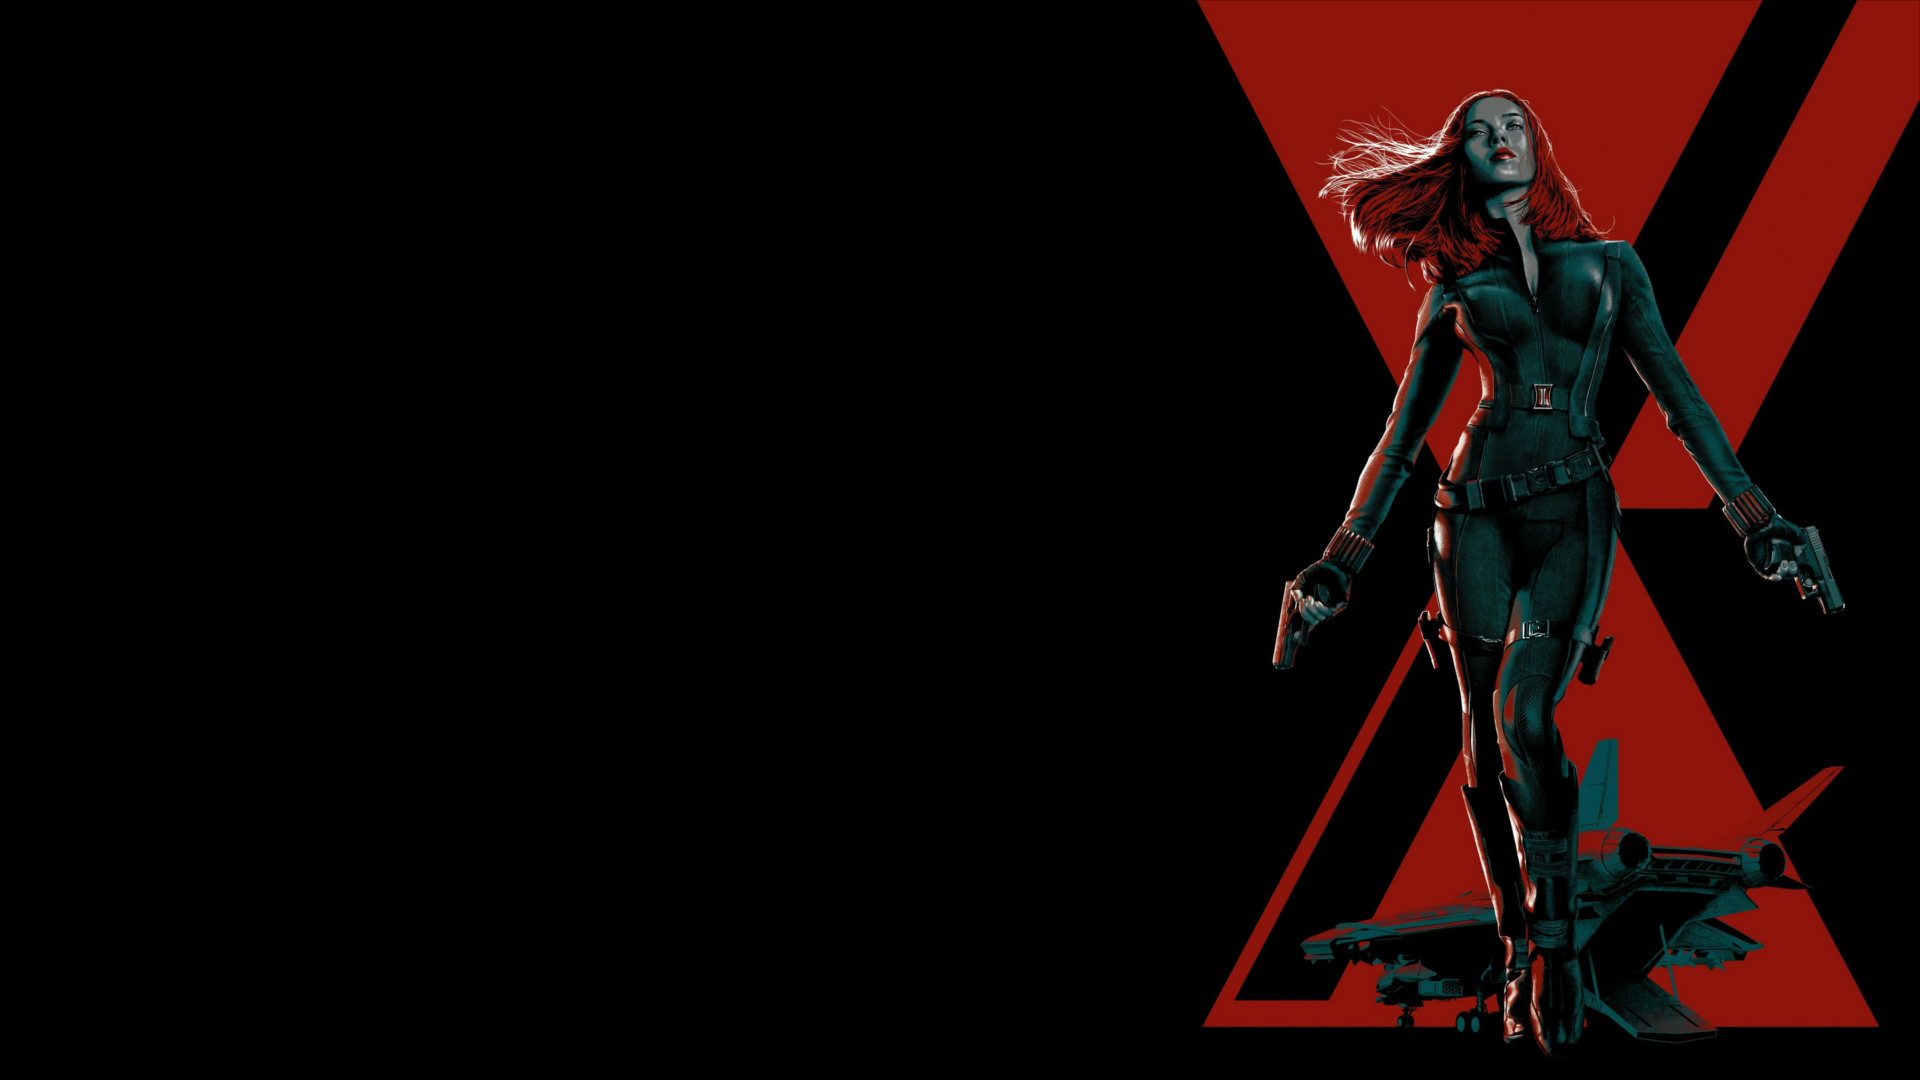 Black Widow Fan Art Wallpaper Hd Superheroes 4k Wallpapers